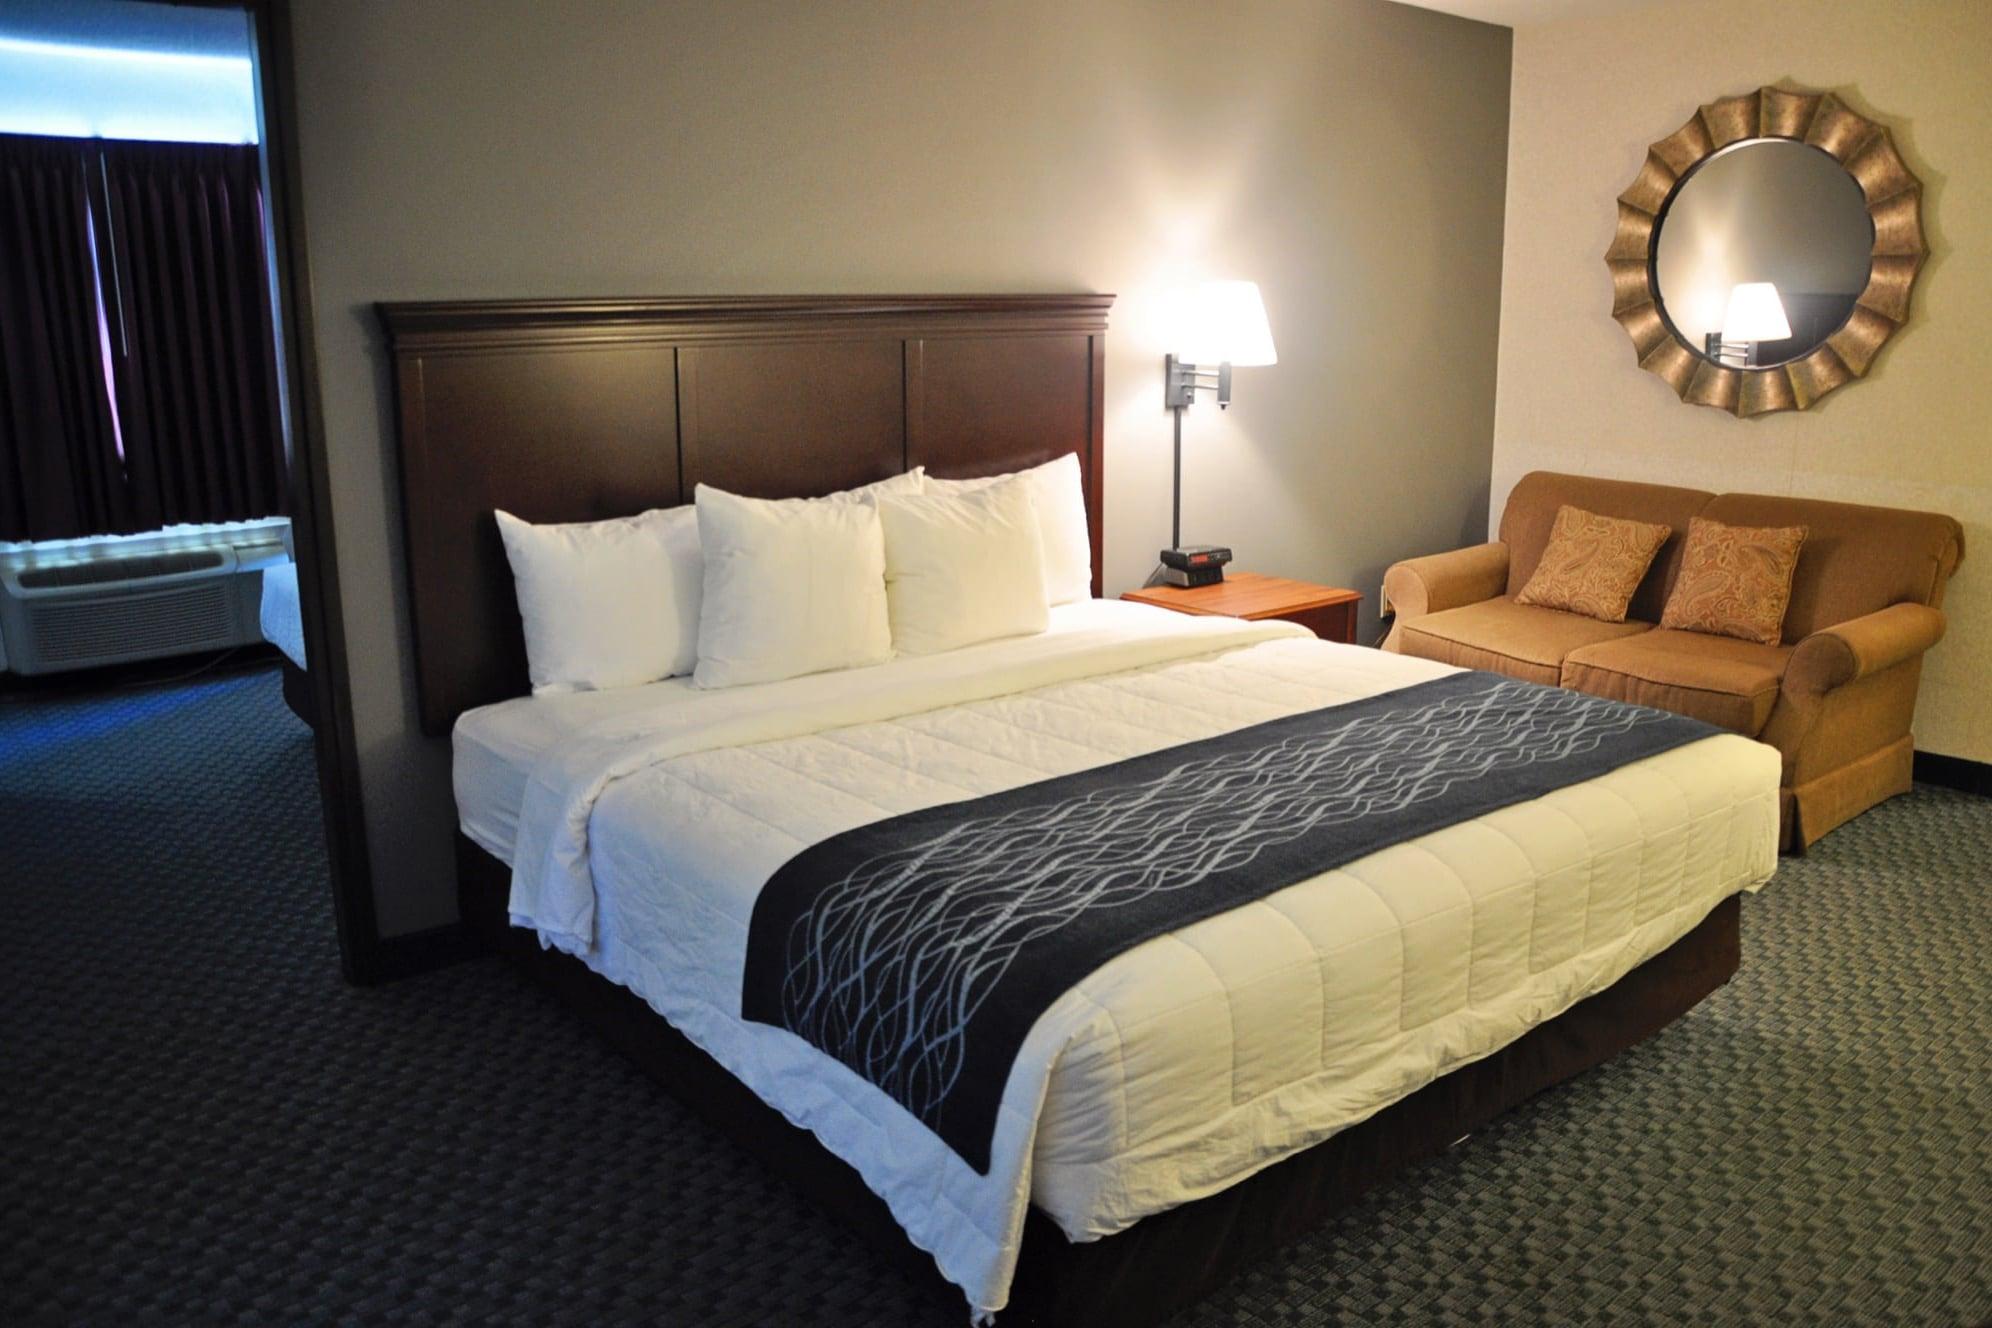 Our largest room is a 2 bedroom suite. It has a king bed and love seat in the main room with a flat screen TV, refrigerator